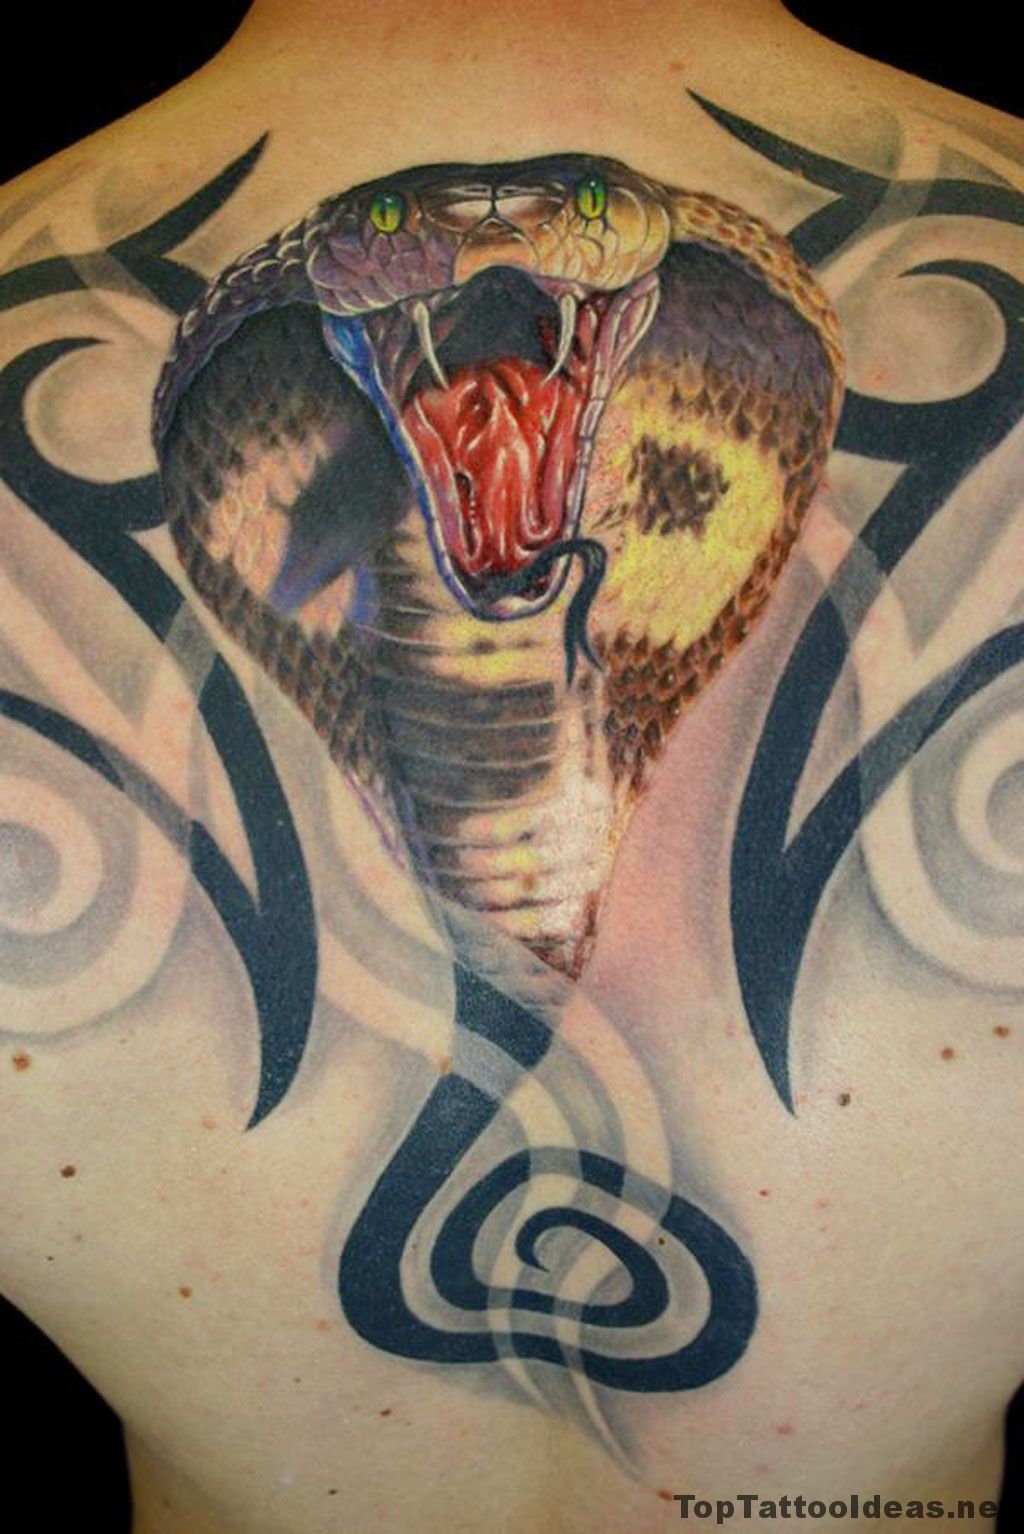 3d cobra tattoo idea tattoo ideas pinterest cobra tattoo tattoo and snake tattoo. Black Bedroom Furniture Sets. Home Design Ideas